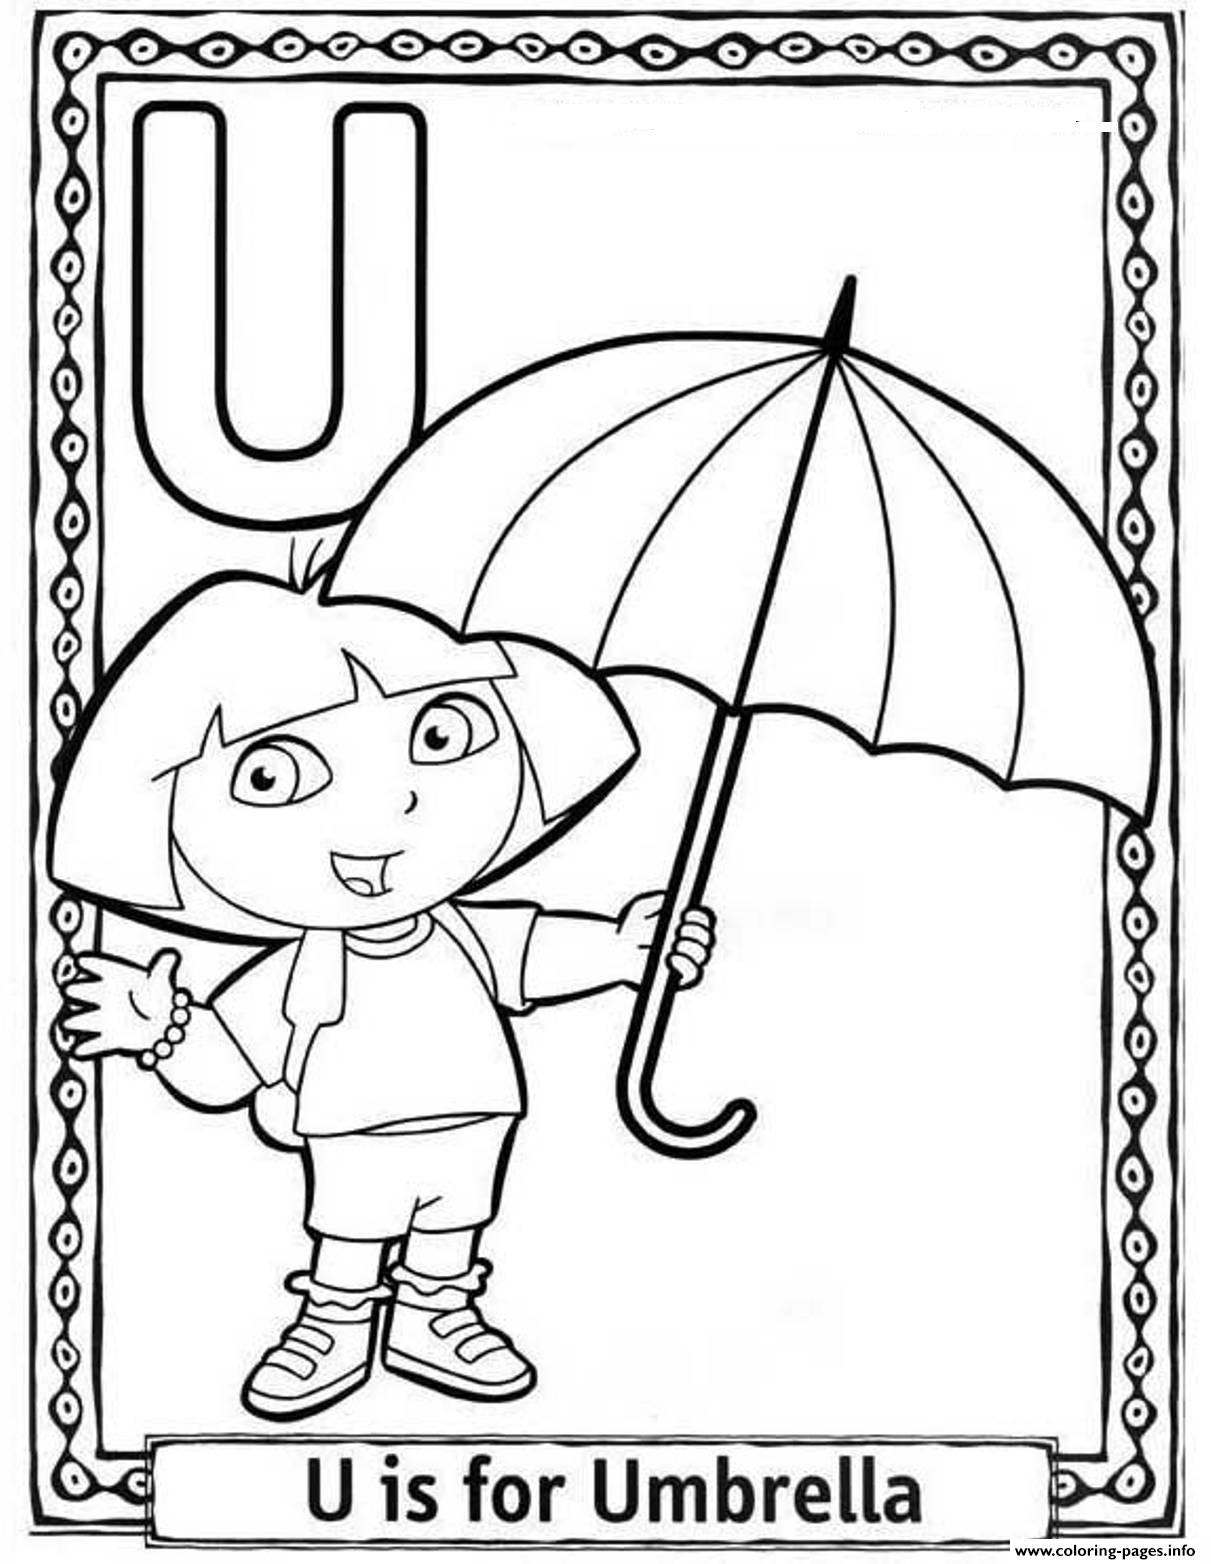 Dora Cartoon Alphabet S Free Umbrella2b65 Coloring Pages Printable